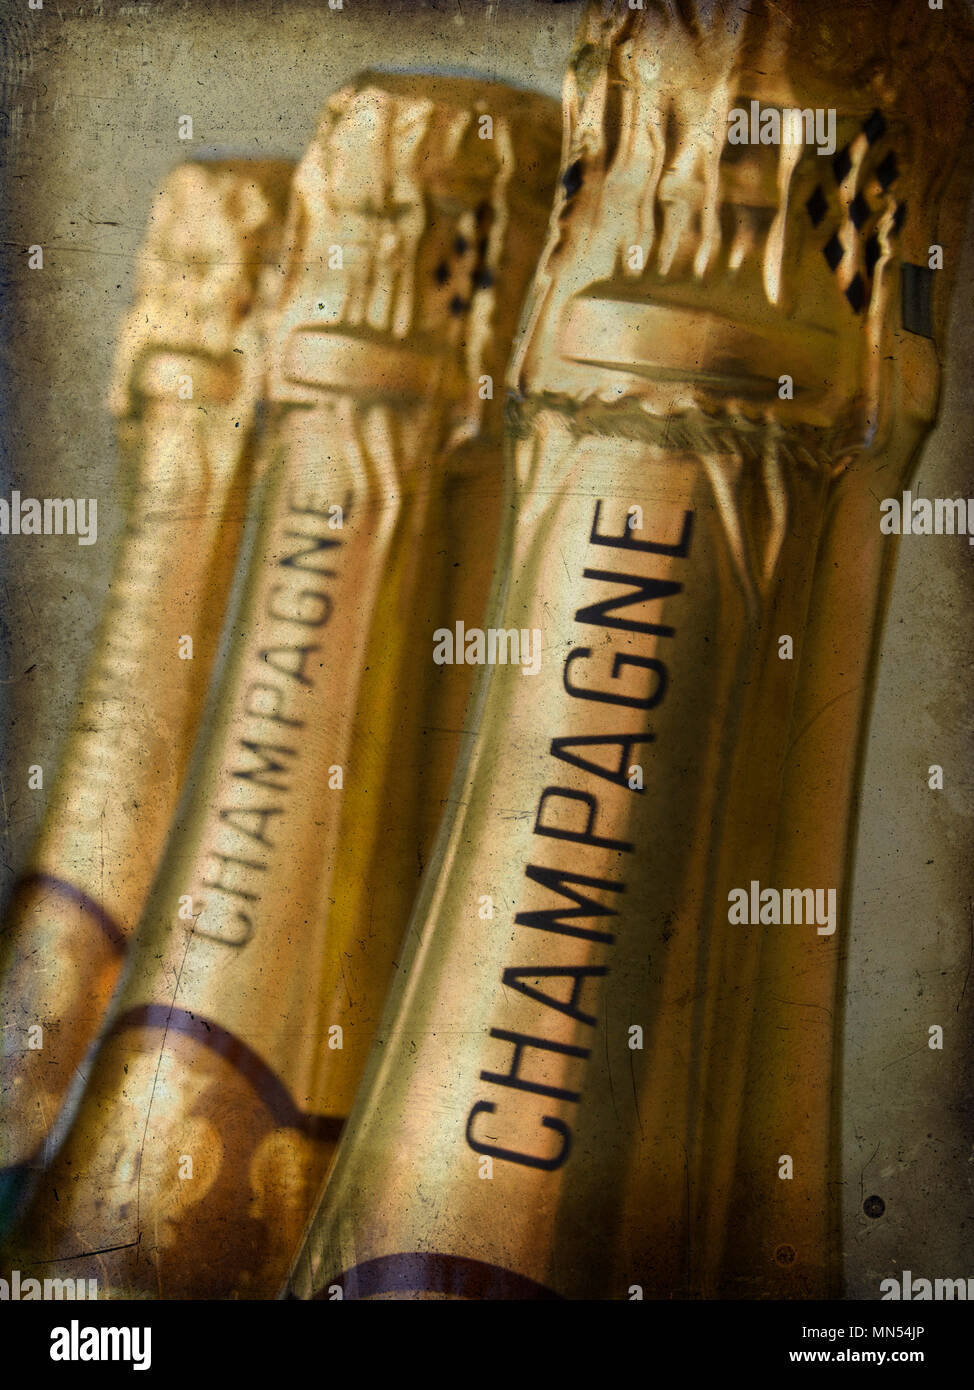 Bottles of champagne Stock Photo